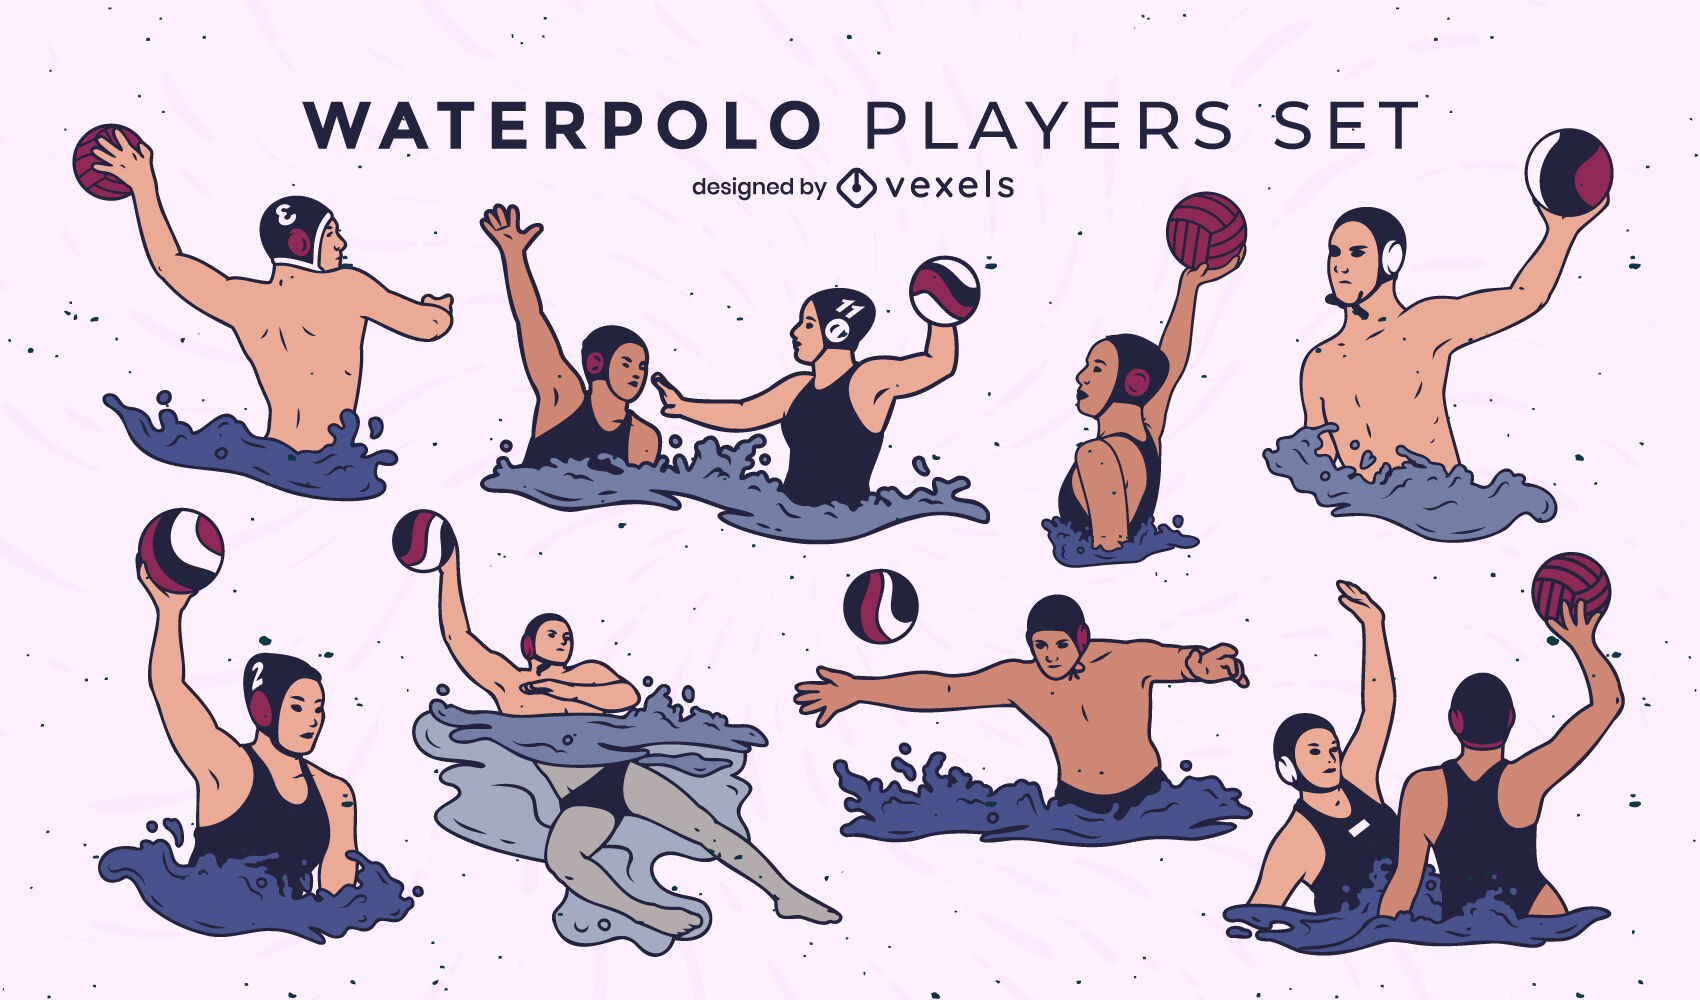 Waterpolo players color stroke set